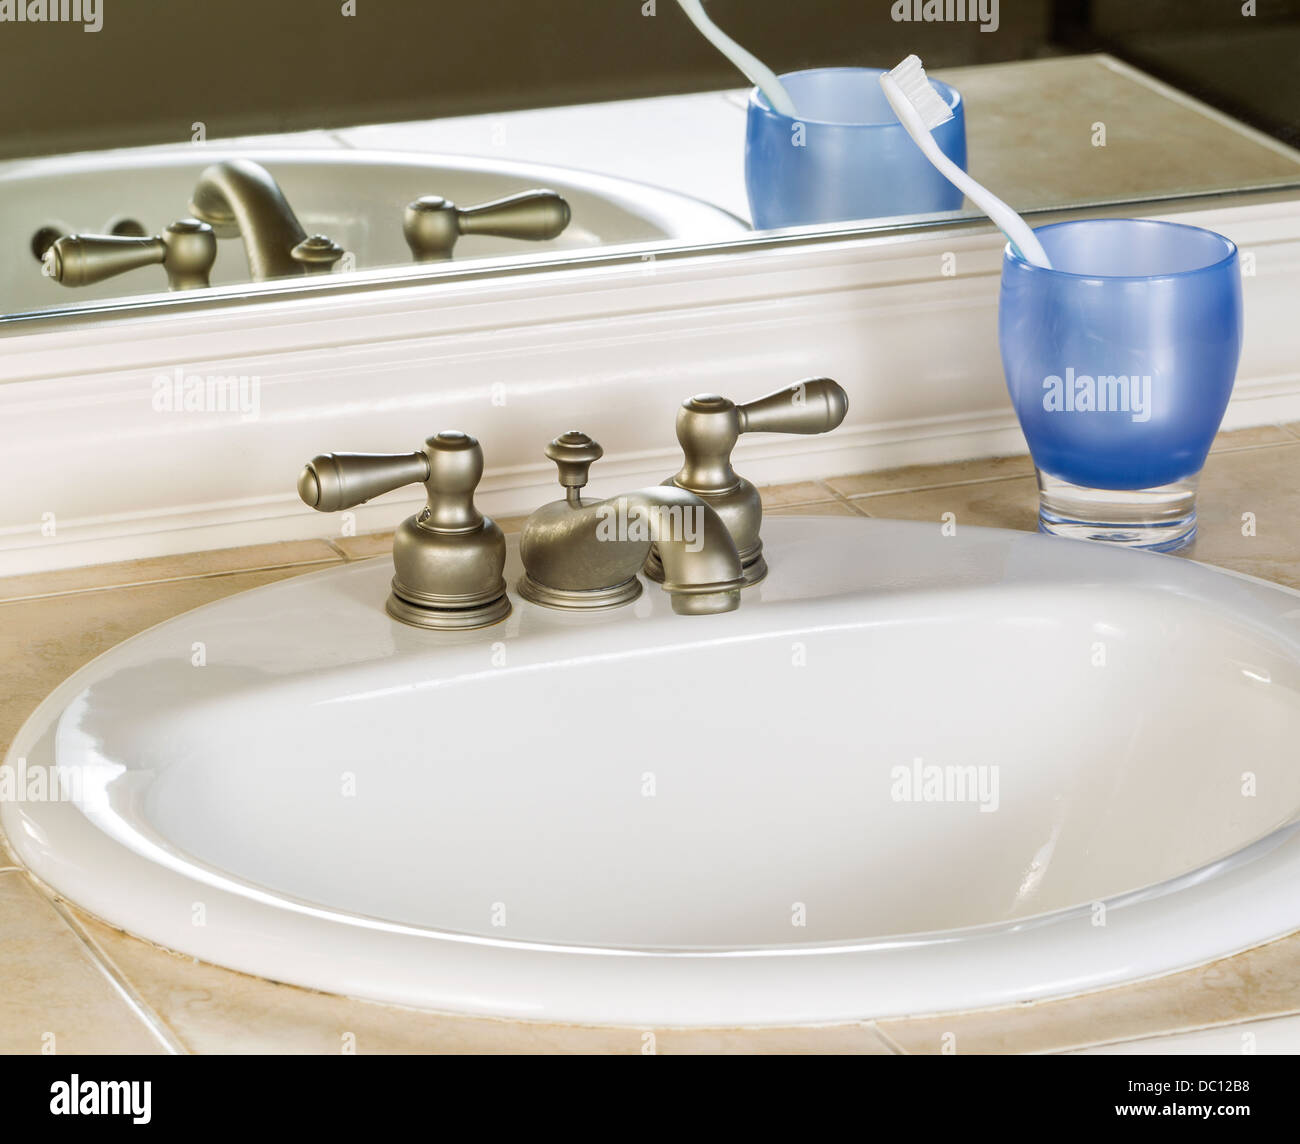 Photo of bathroom sink and faucet with blue cup, tooth brush and mirror in background - Stock Image